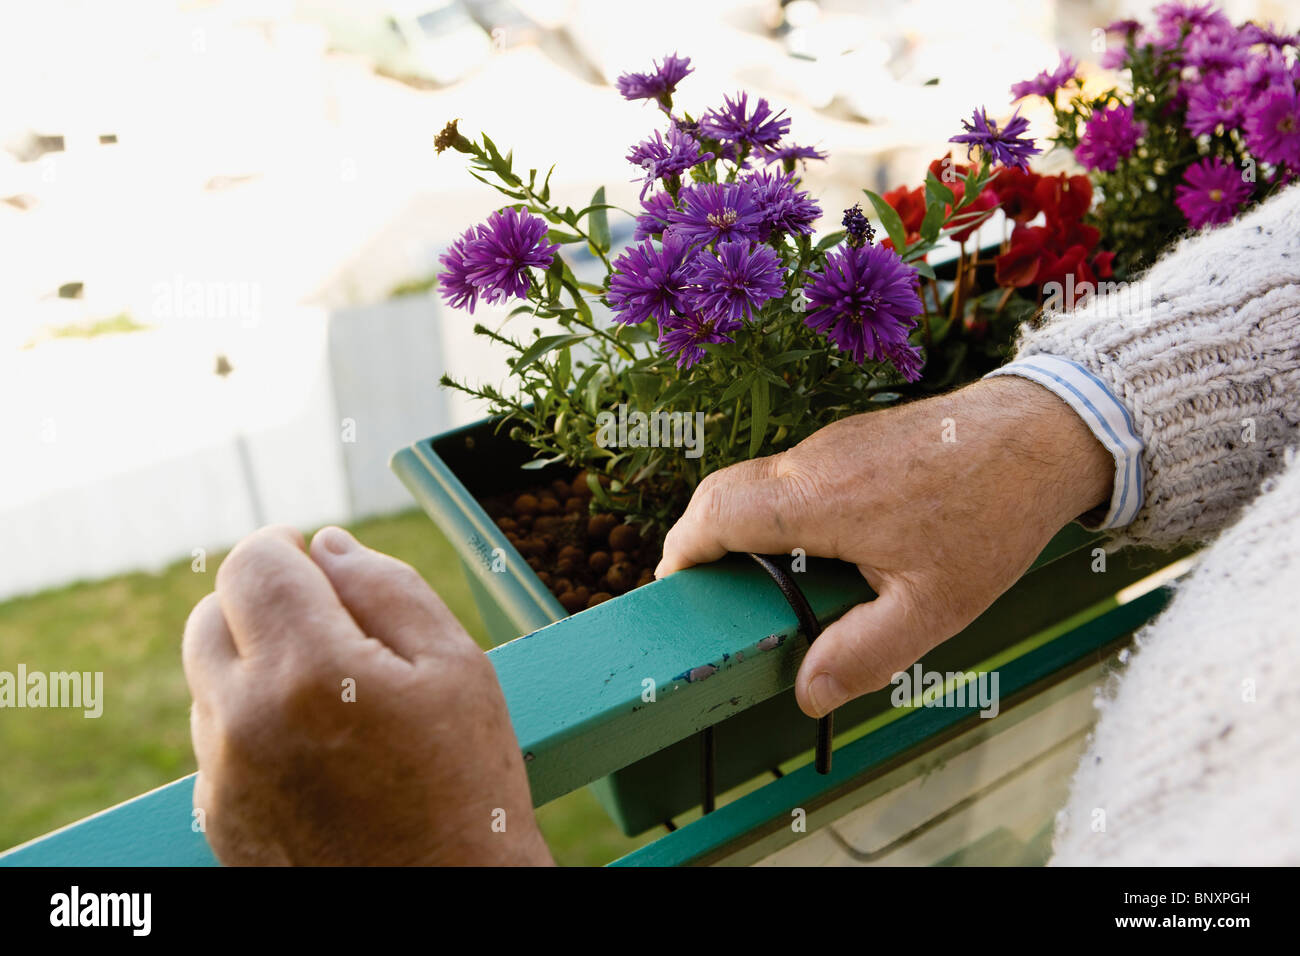 Standing on balcony, blooming flowers in window box - Stock Image